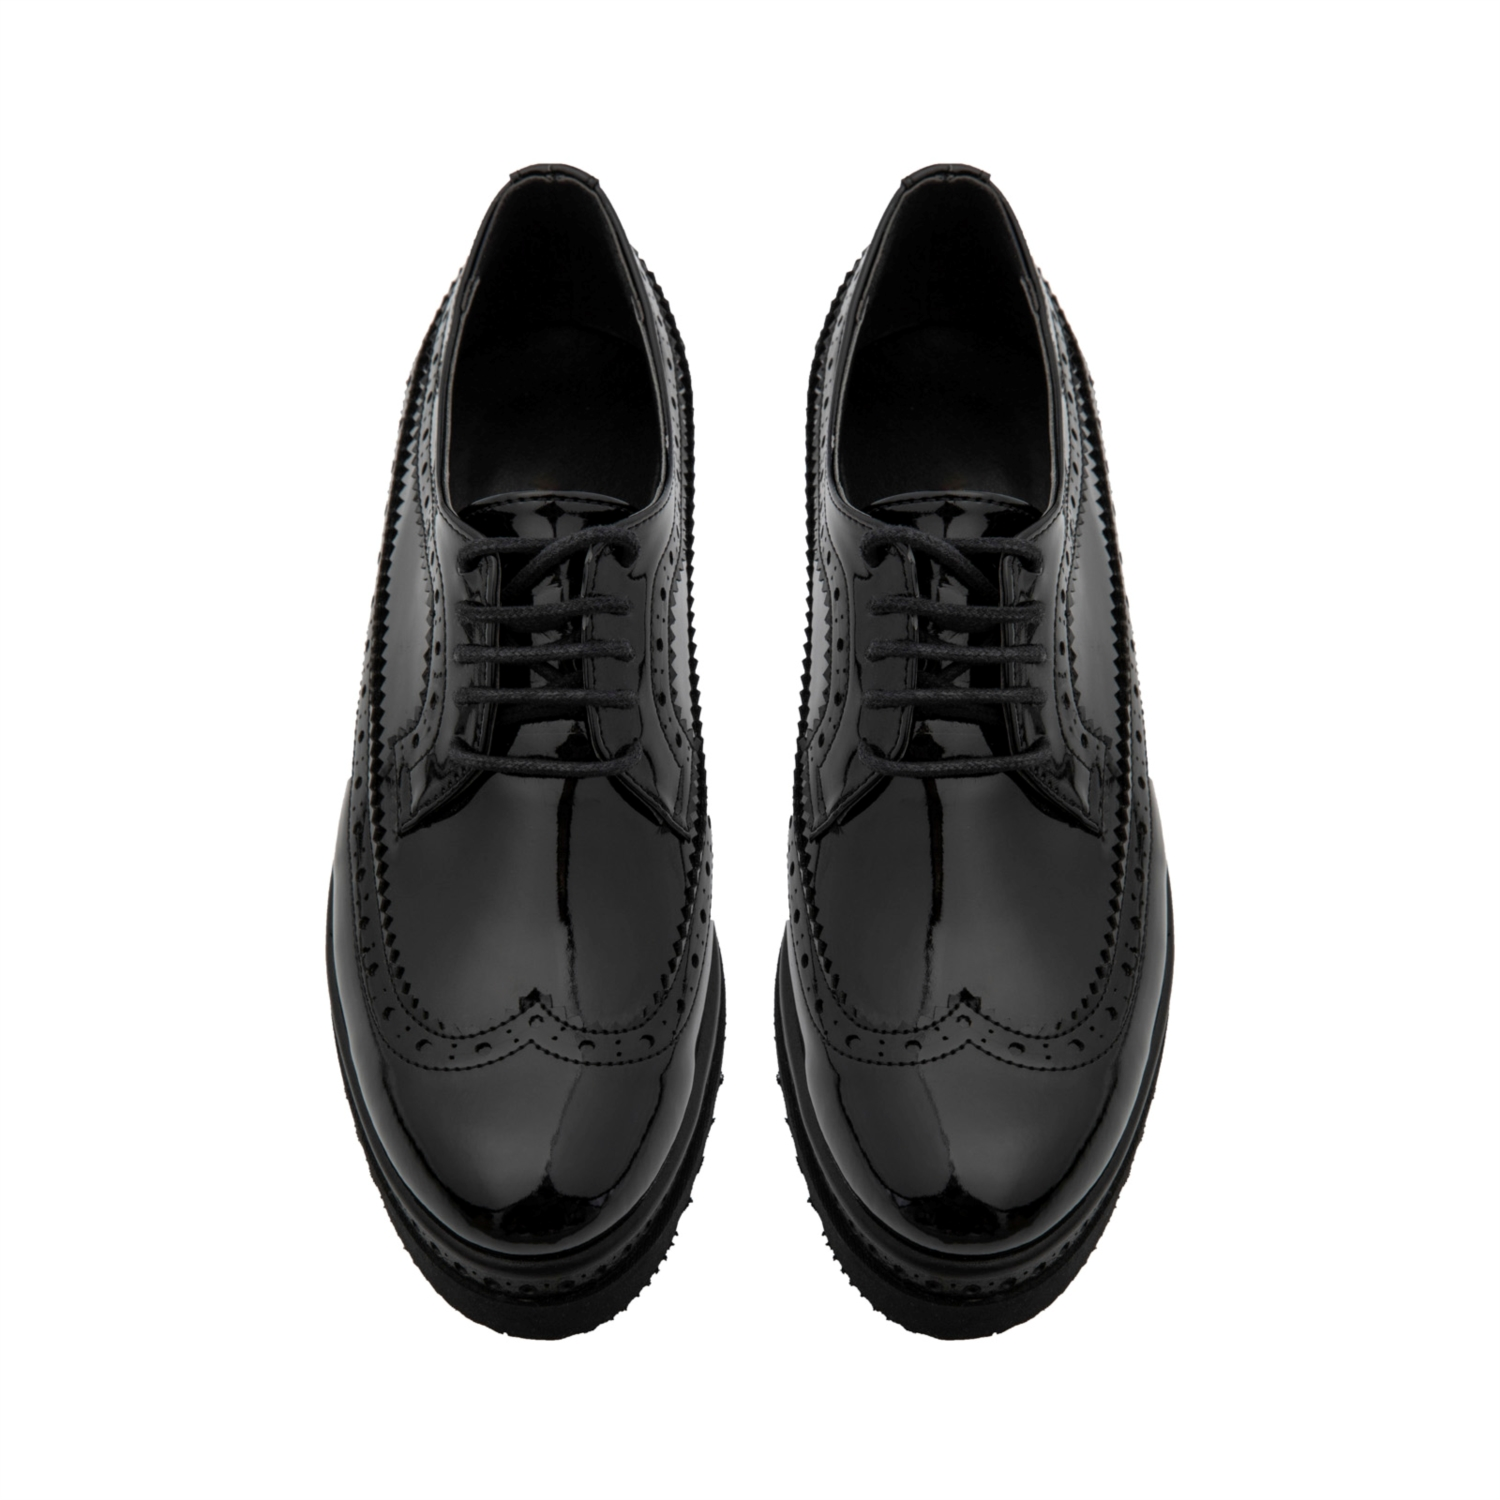 LOAFER OXFORD RUGAN AYAKKABI